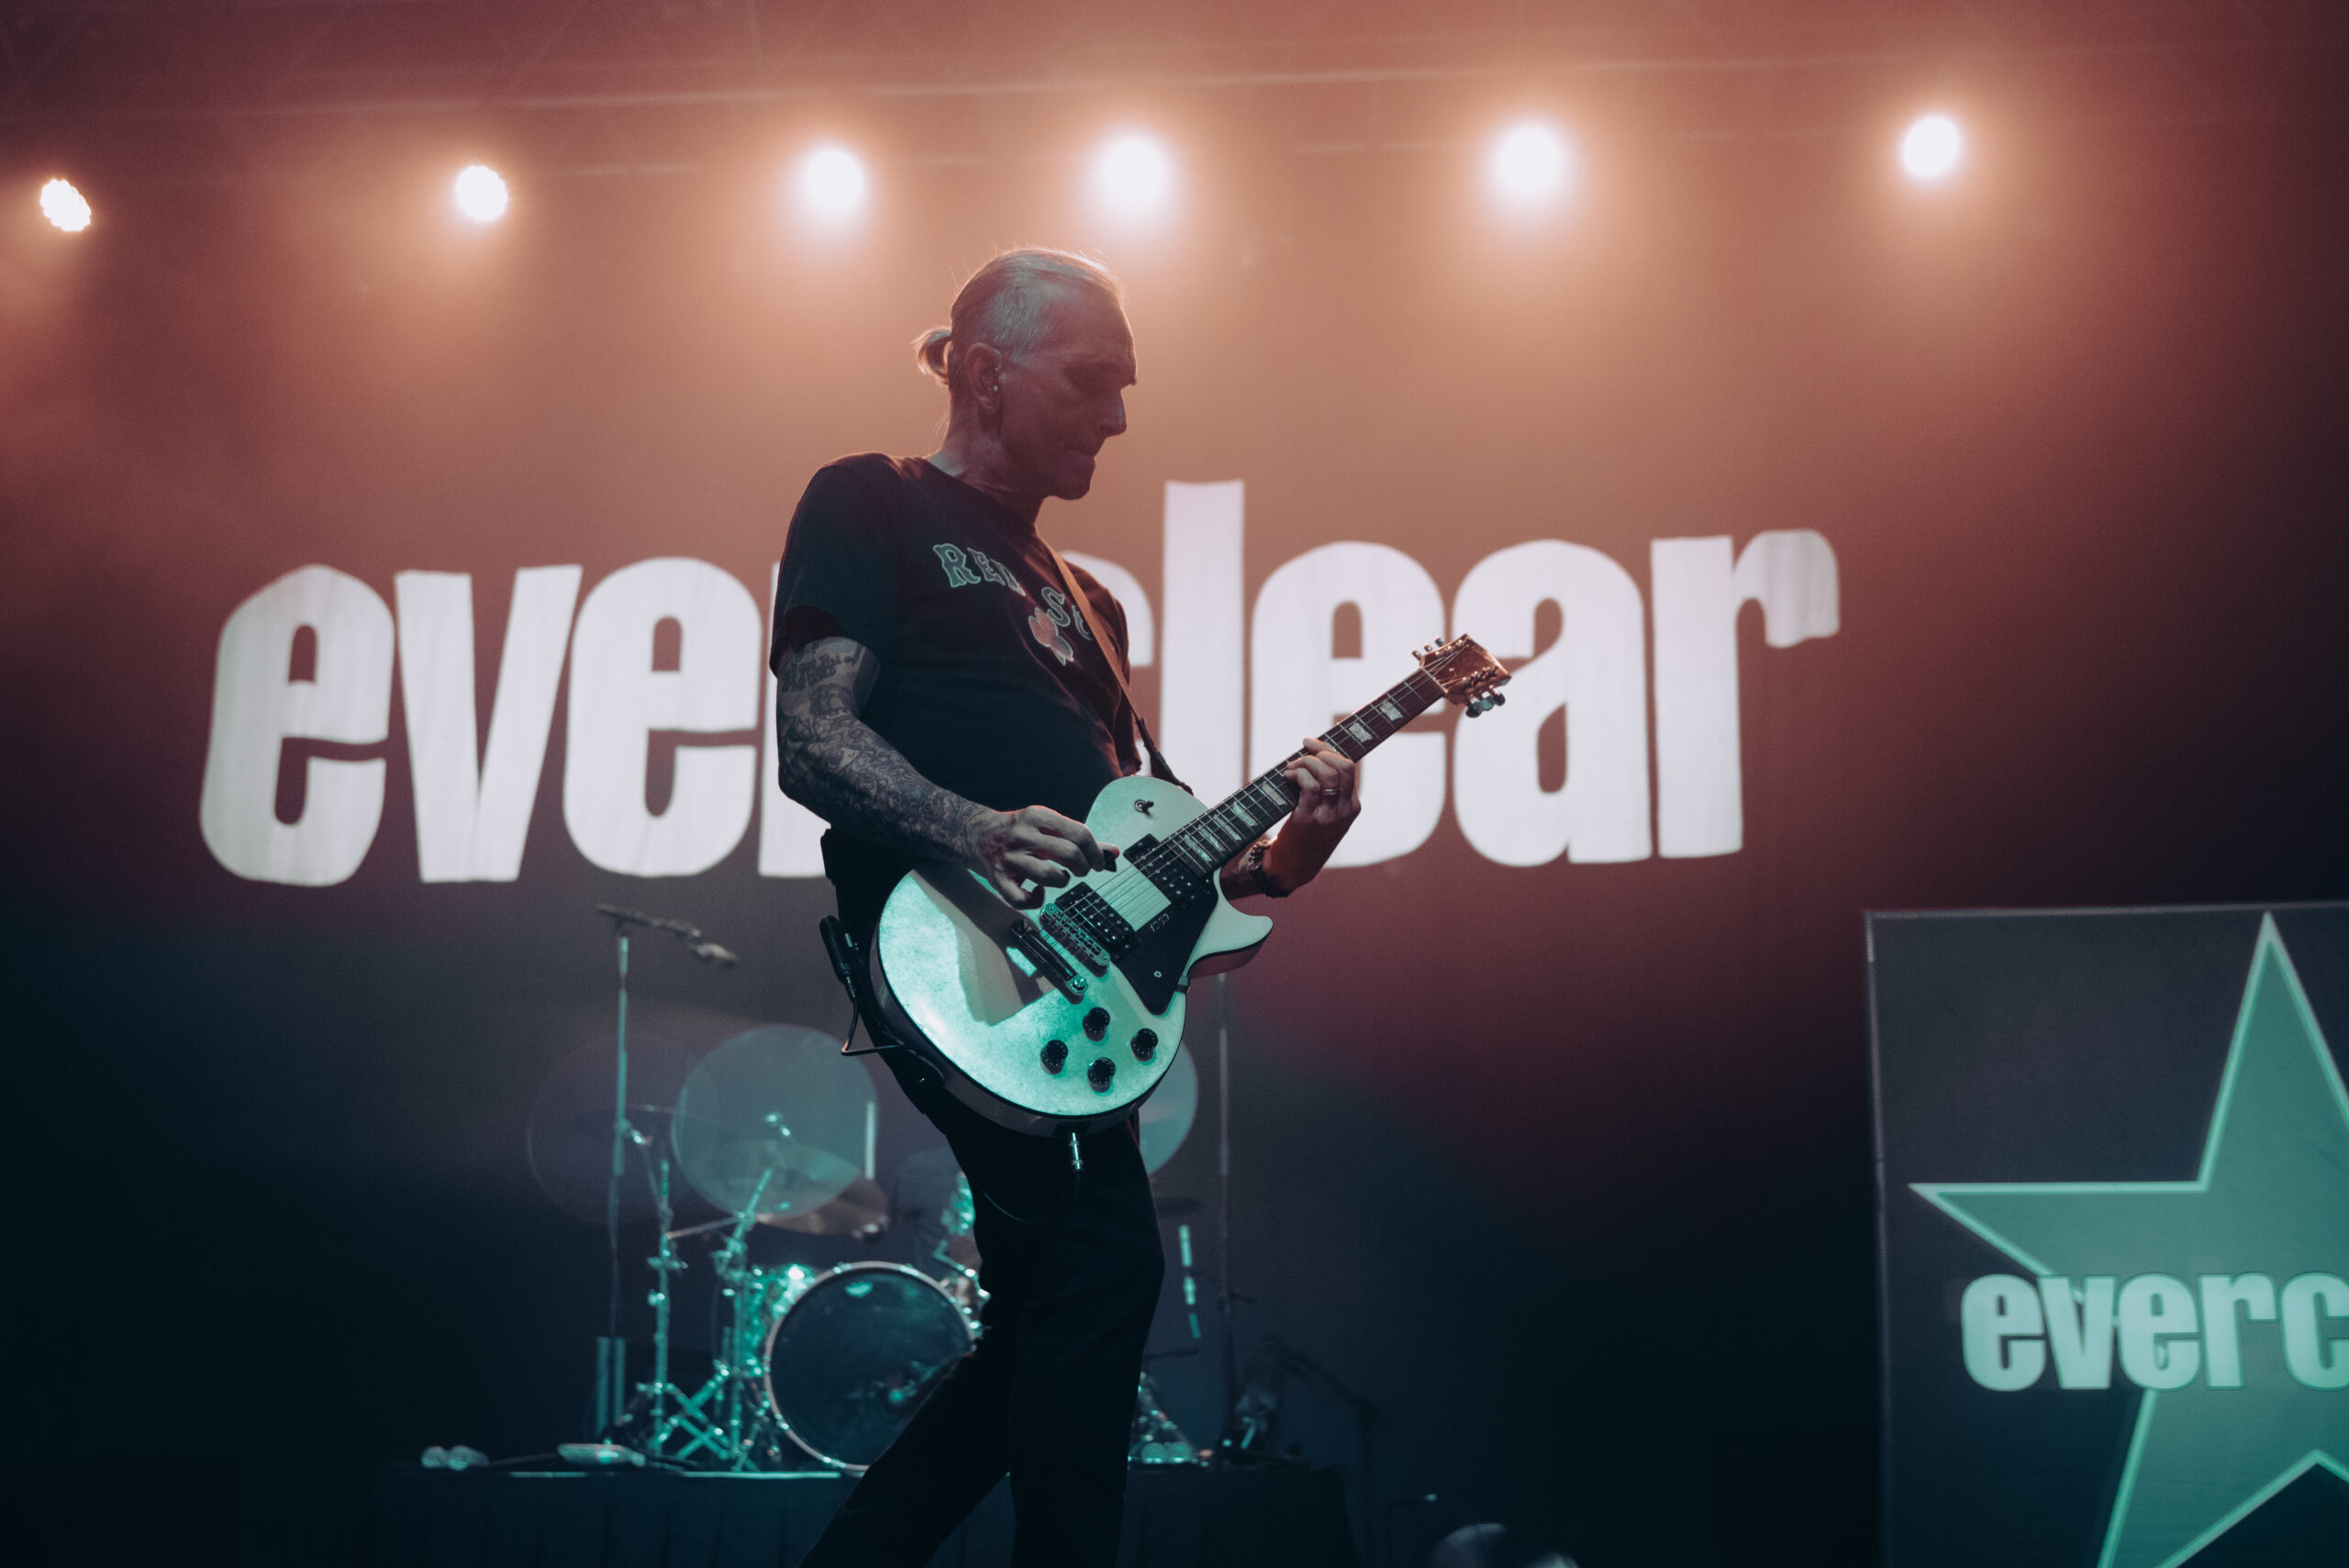 LIVE PHOTOS: Everclear's Summerland Tour comes to Boston